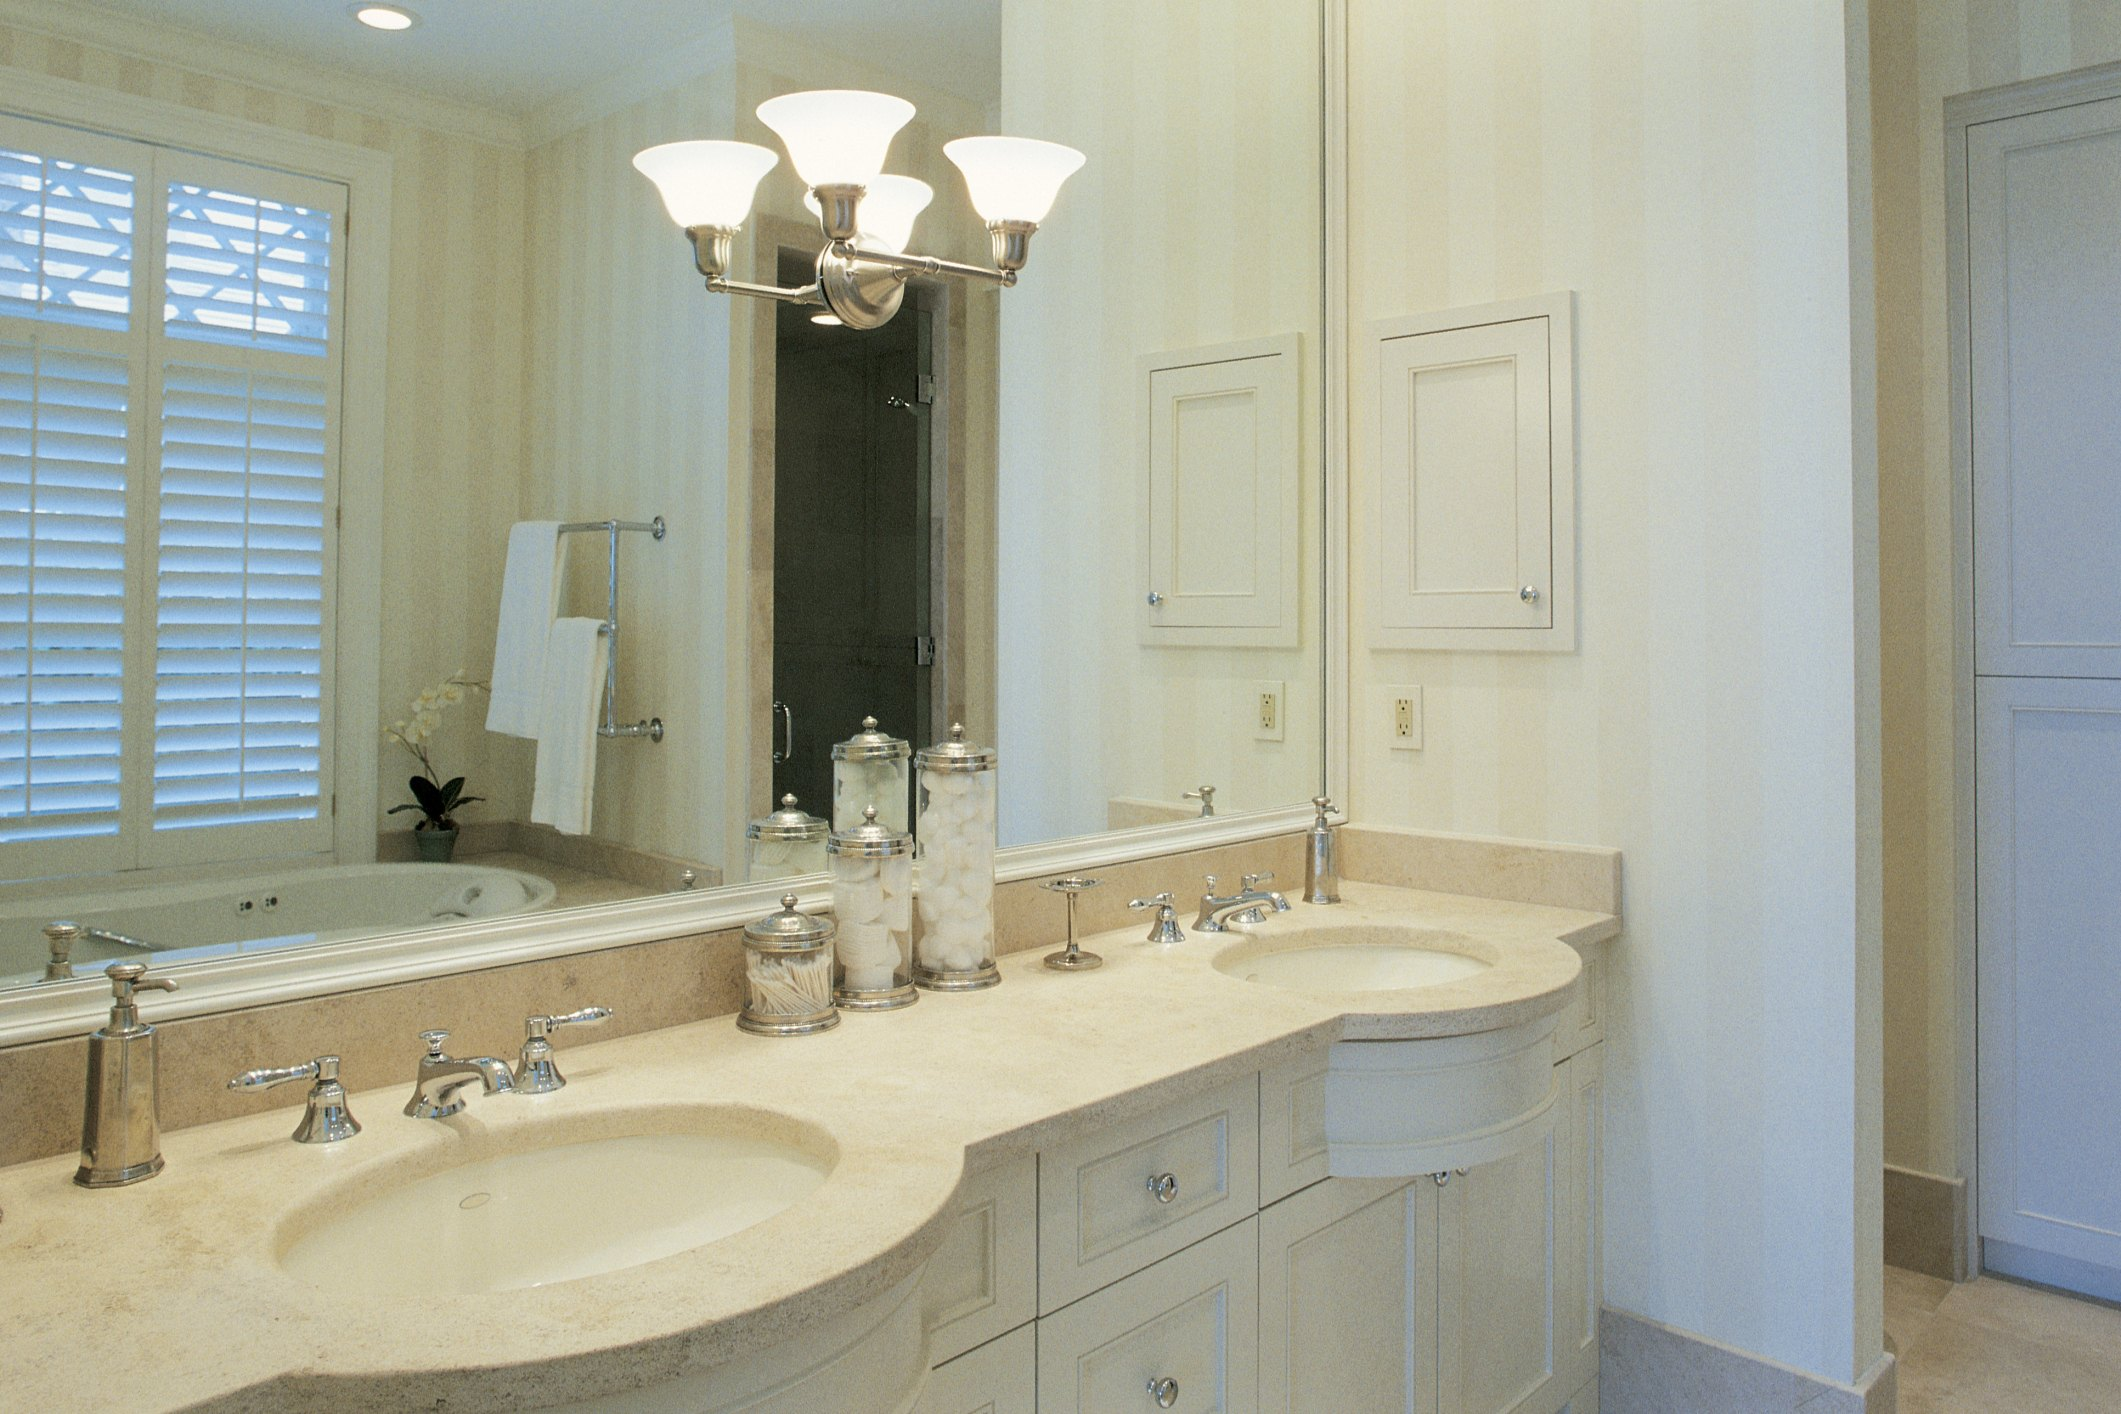 How To Replace Bathroom Vanity Lights Going From One Light